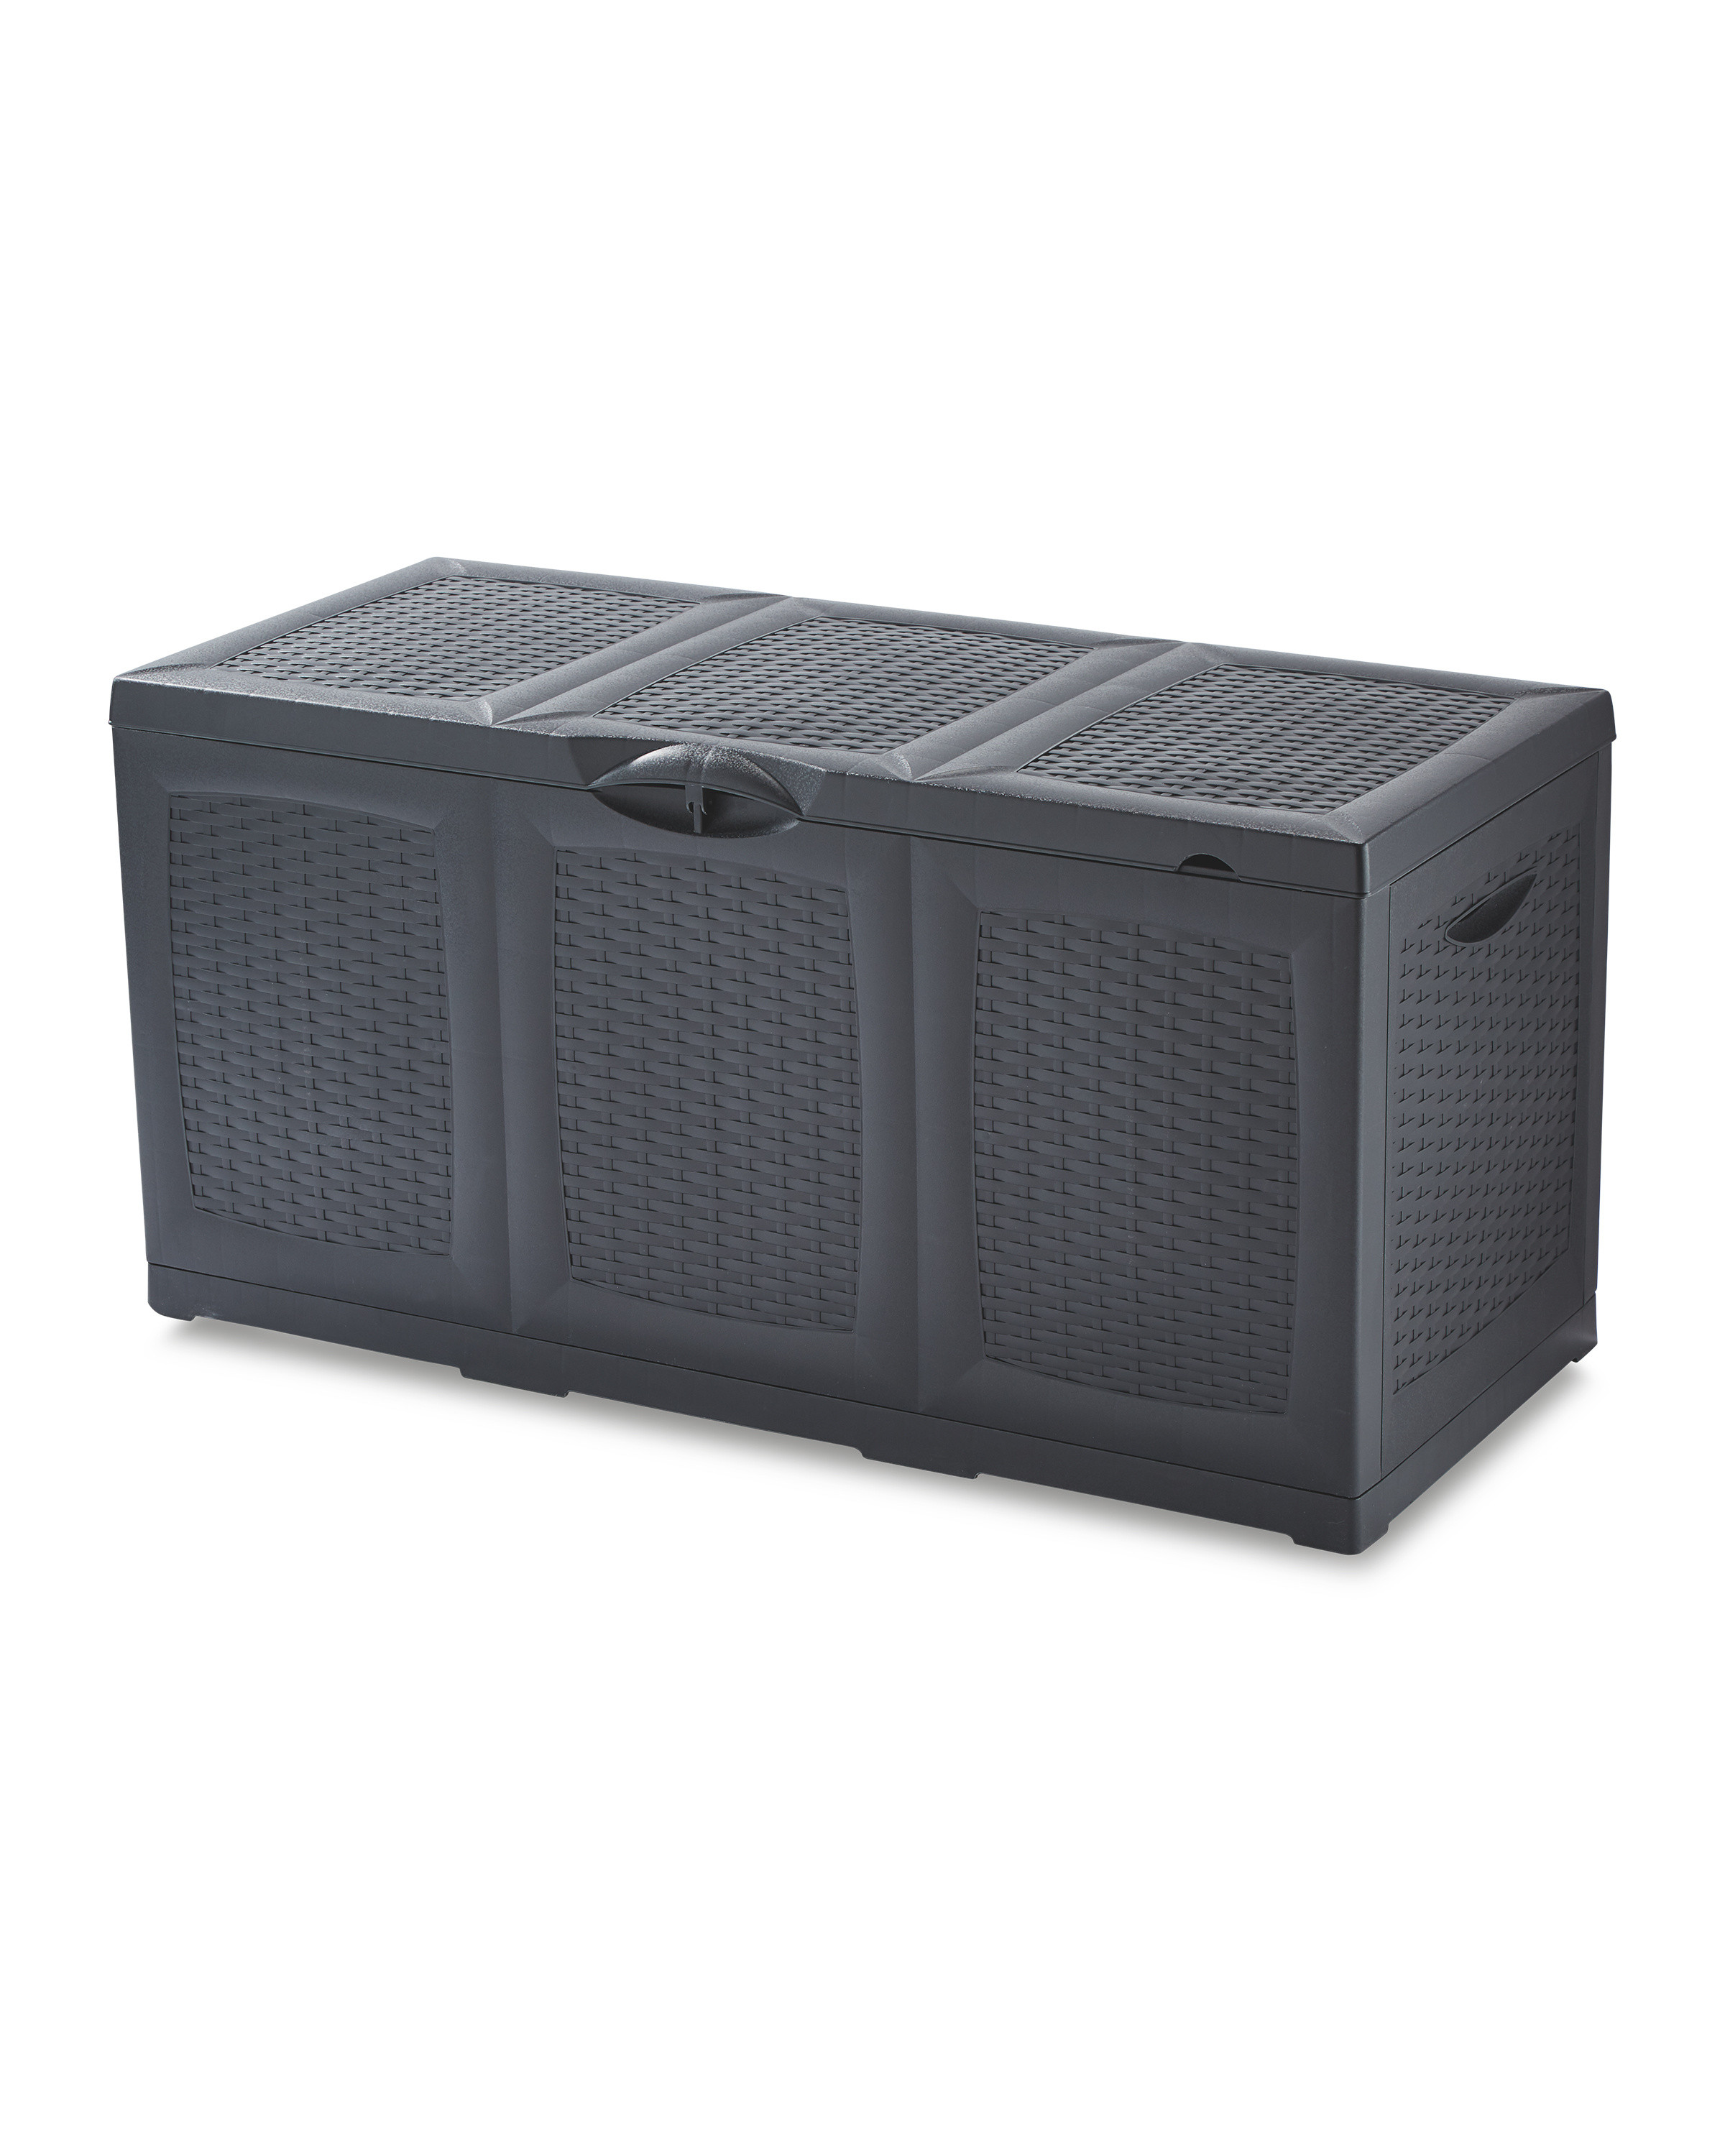 Gardenline Garden Storage Box Aldi Uk